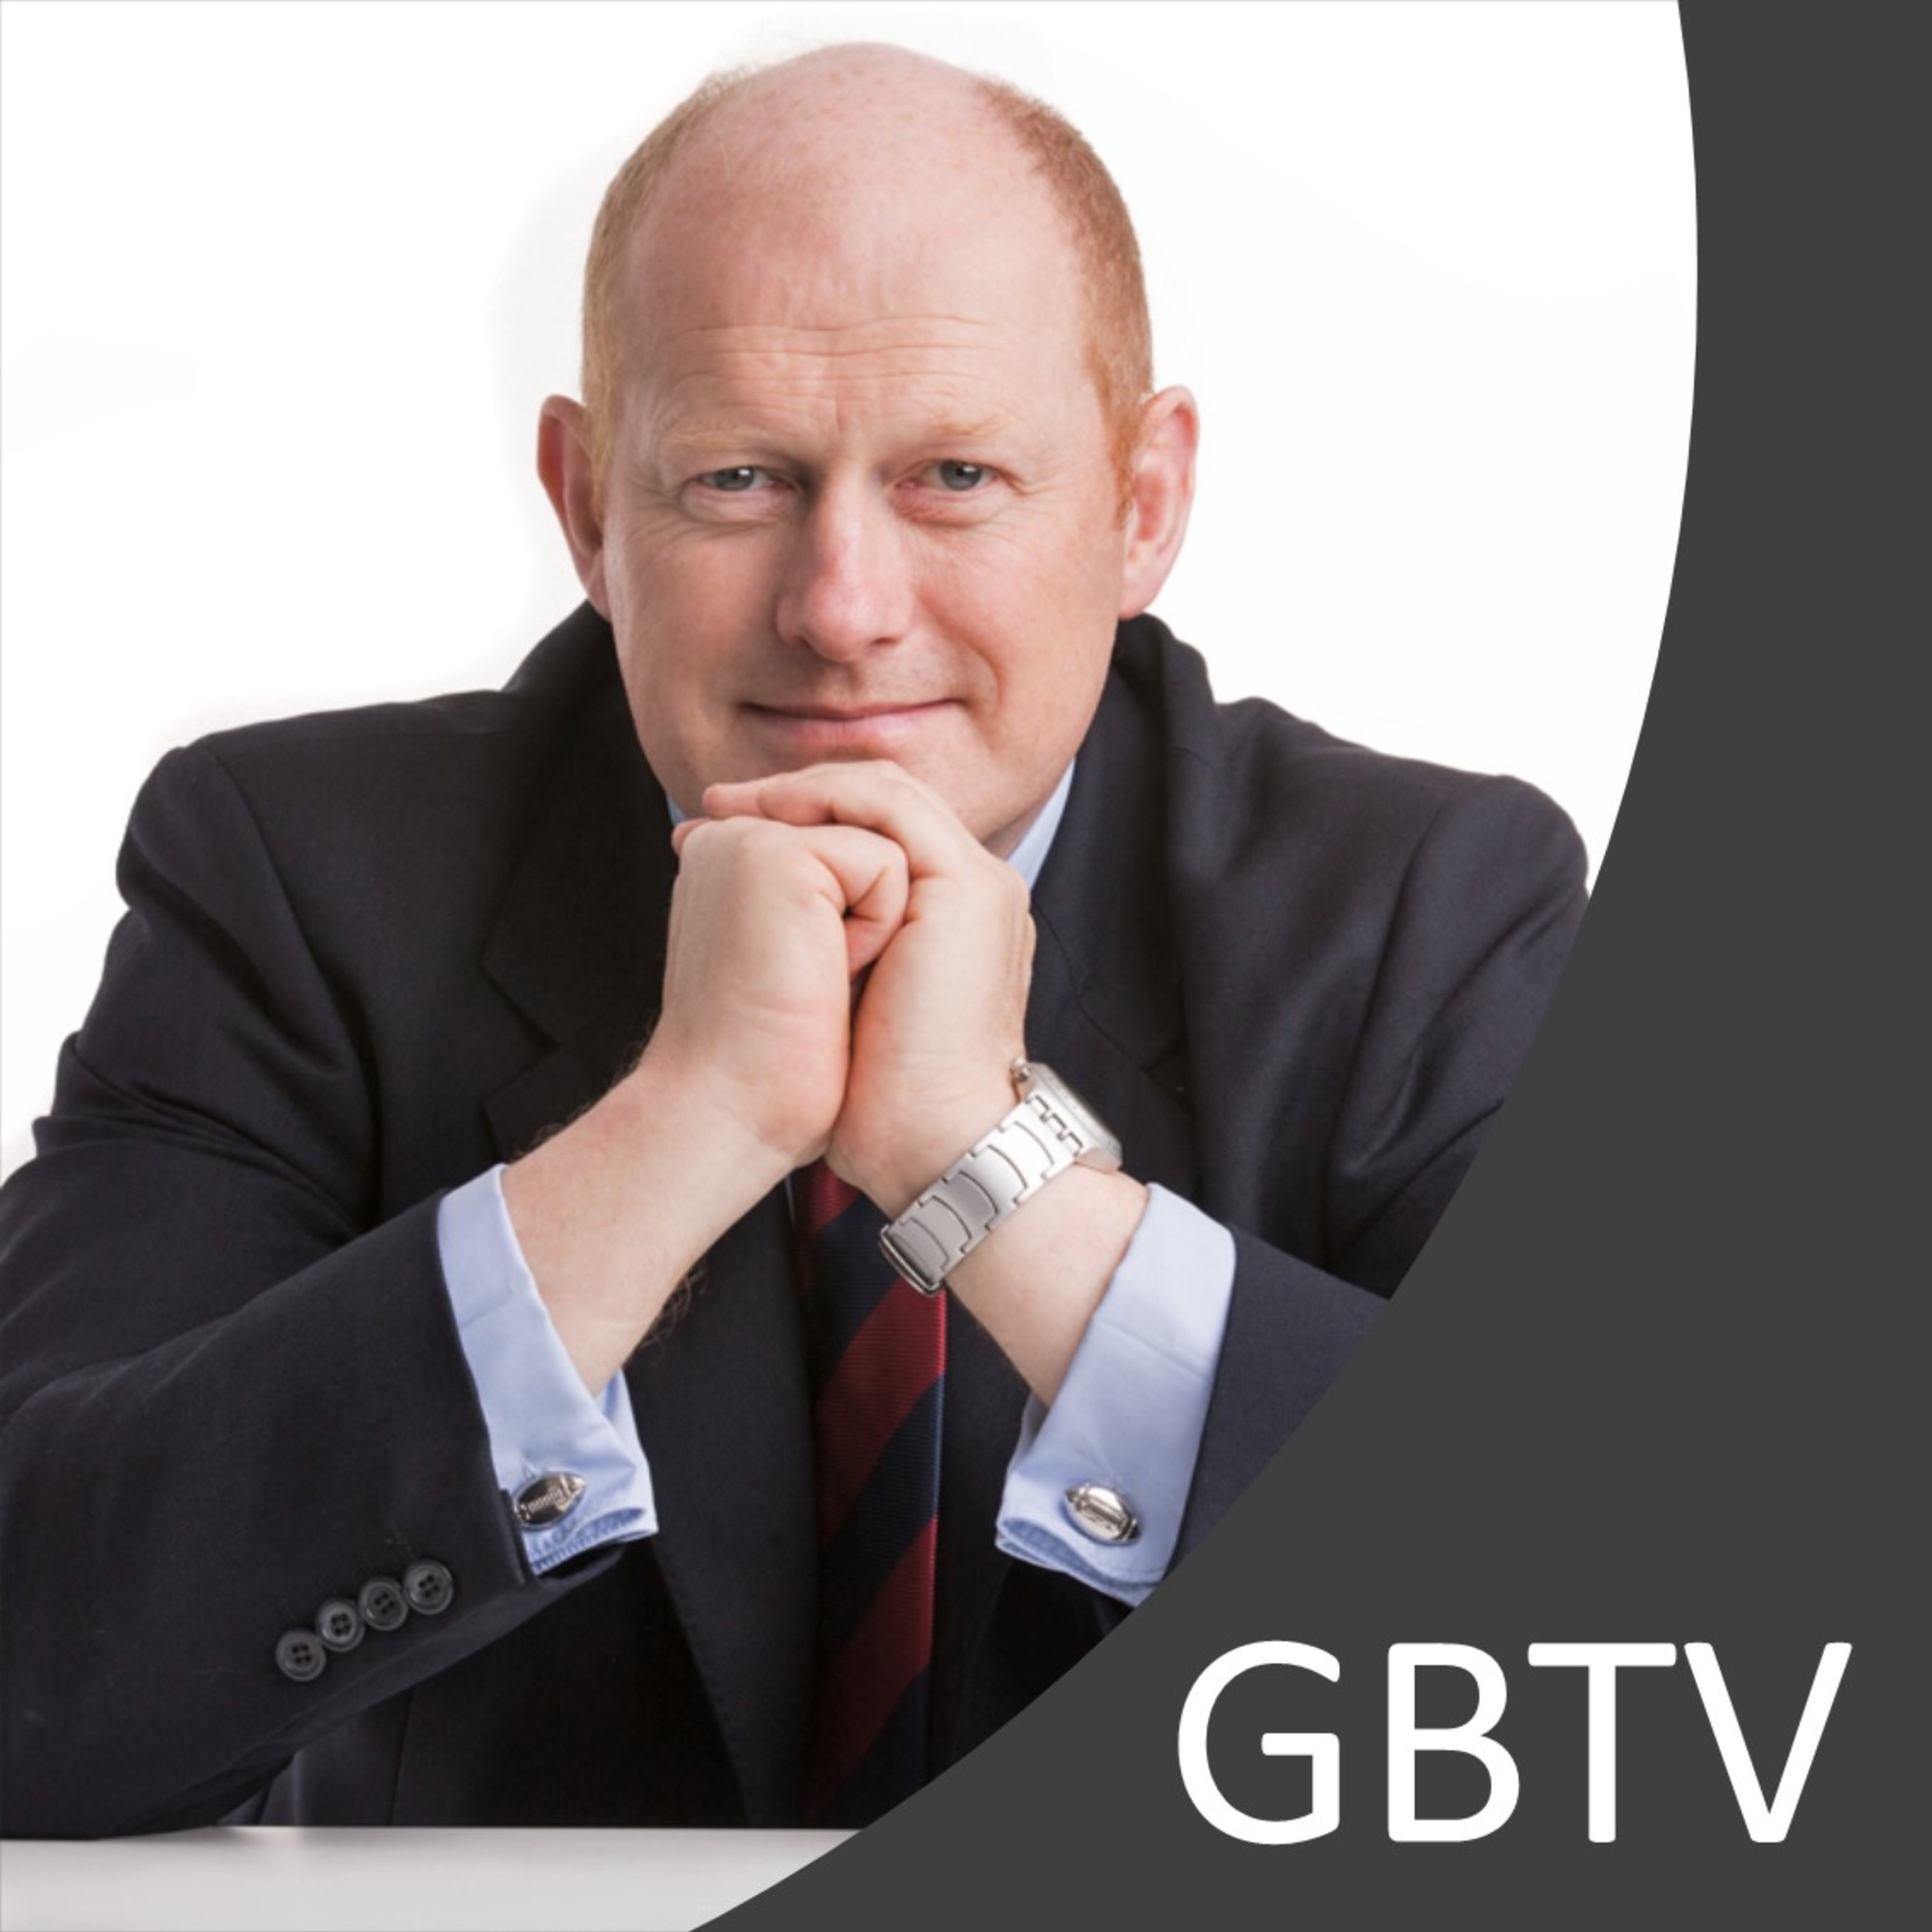 GBTV Podcast Episode 18 - Is your focus on sales and marketing or assets?